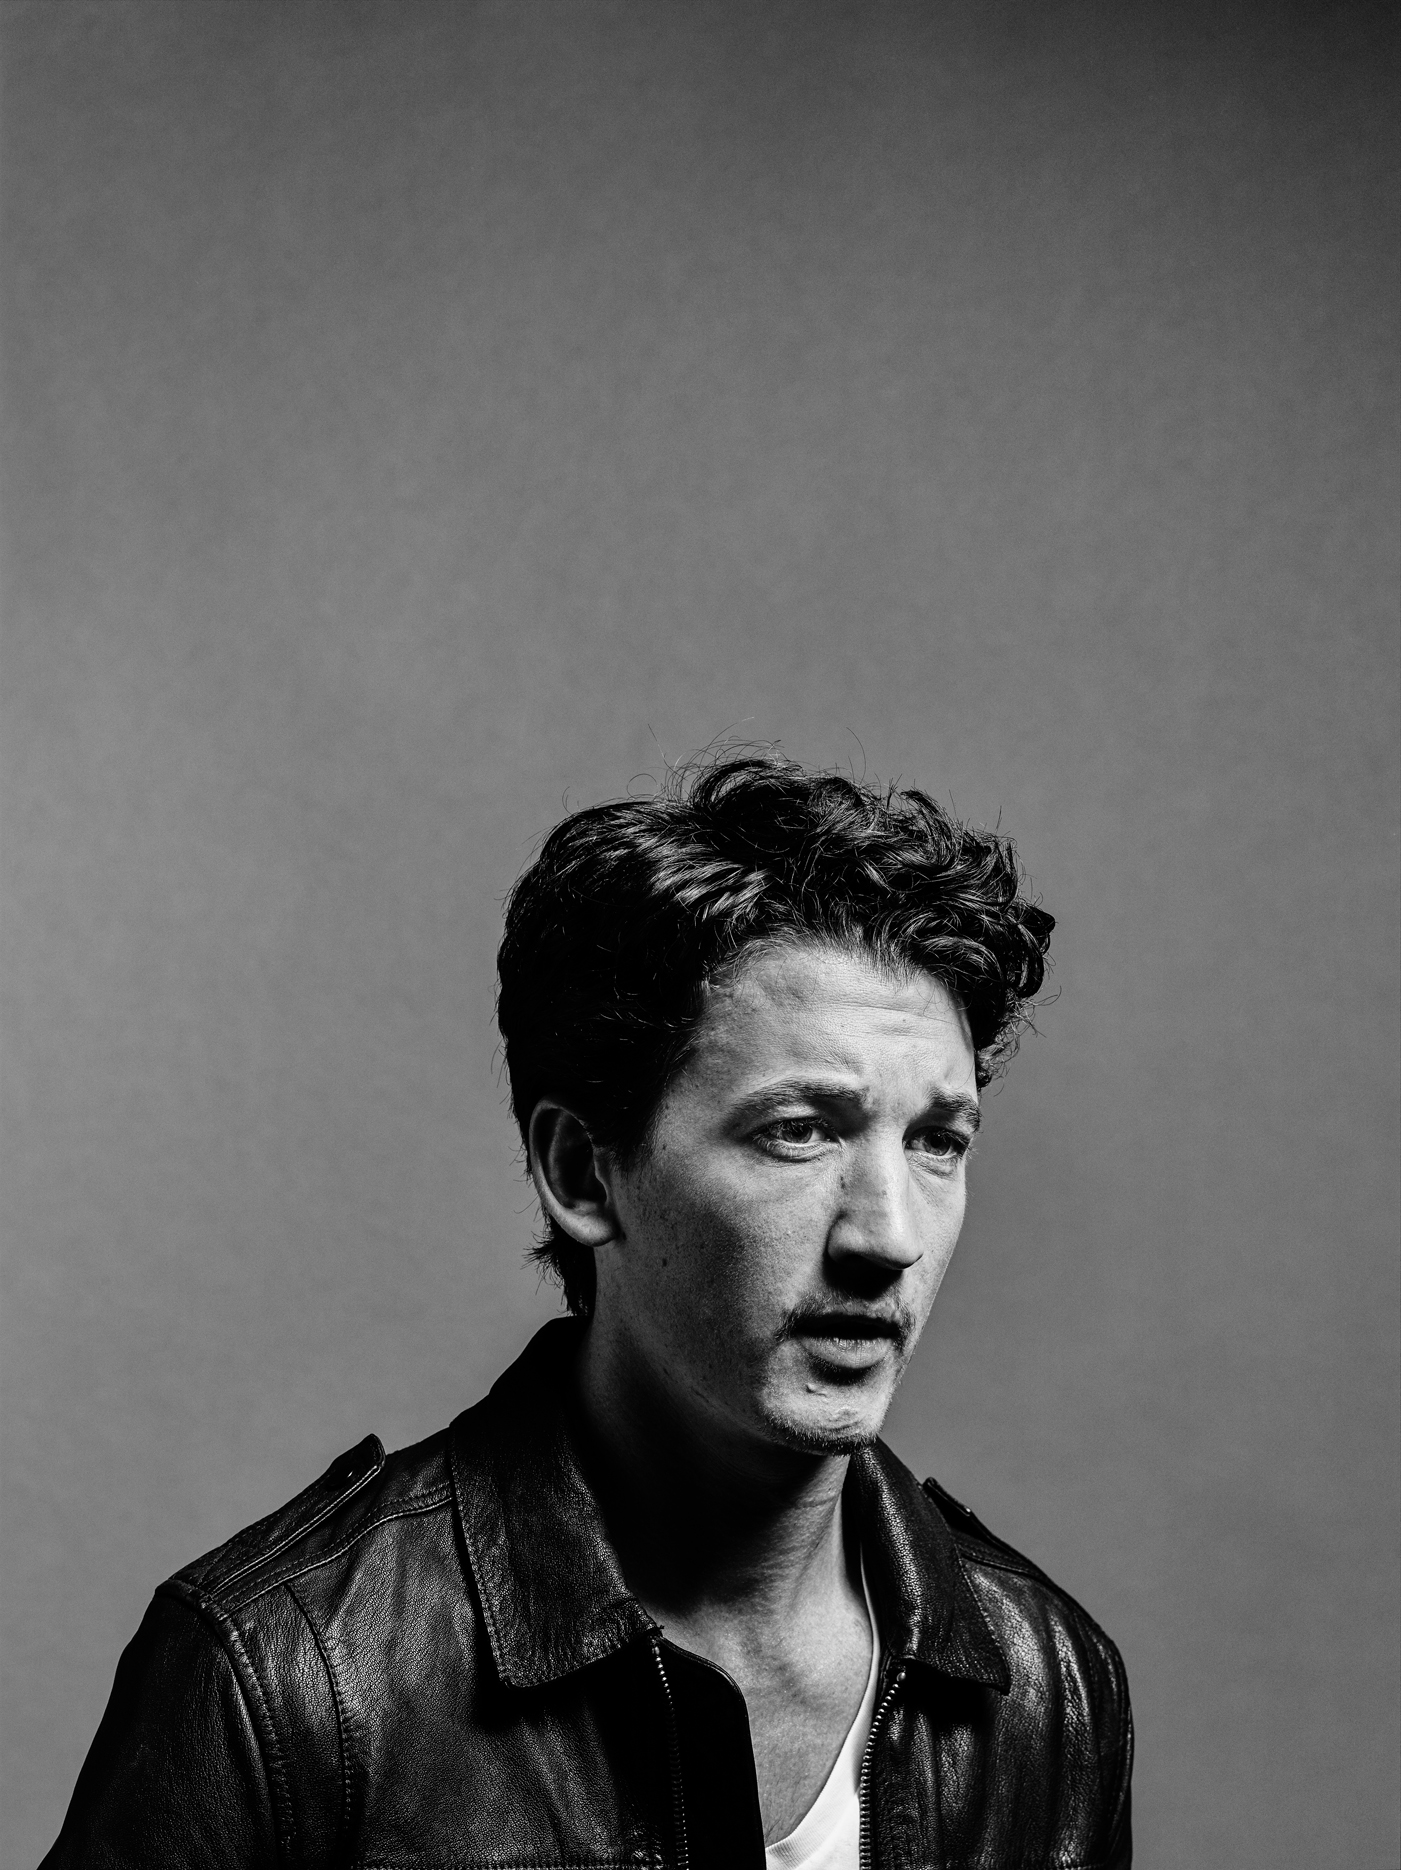 Miles Teller Biography – Facts, Childhood, Family Life ... |Miles Teller Biography